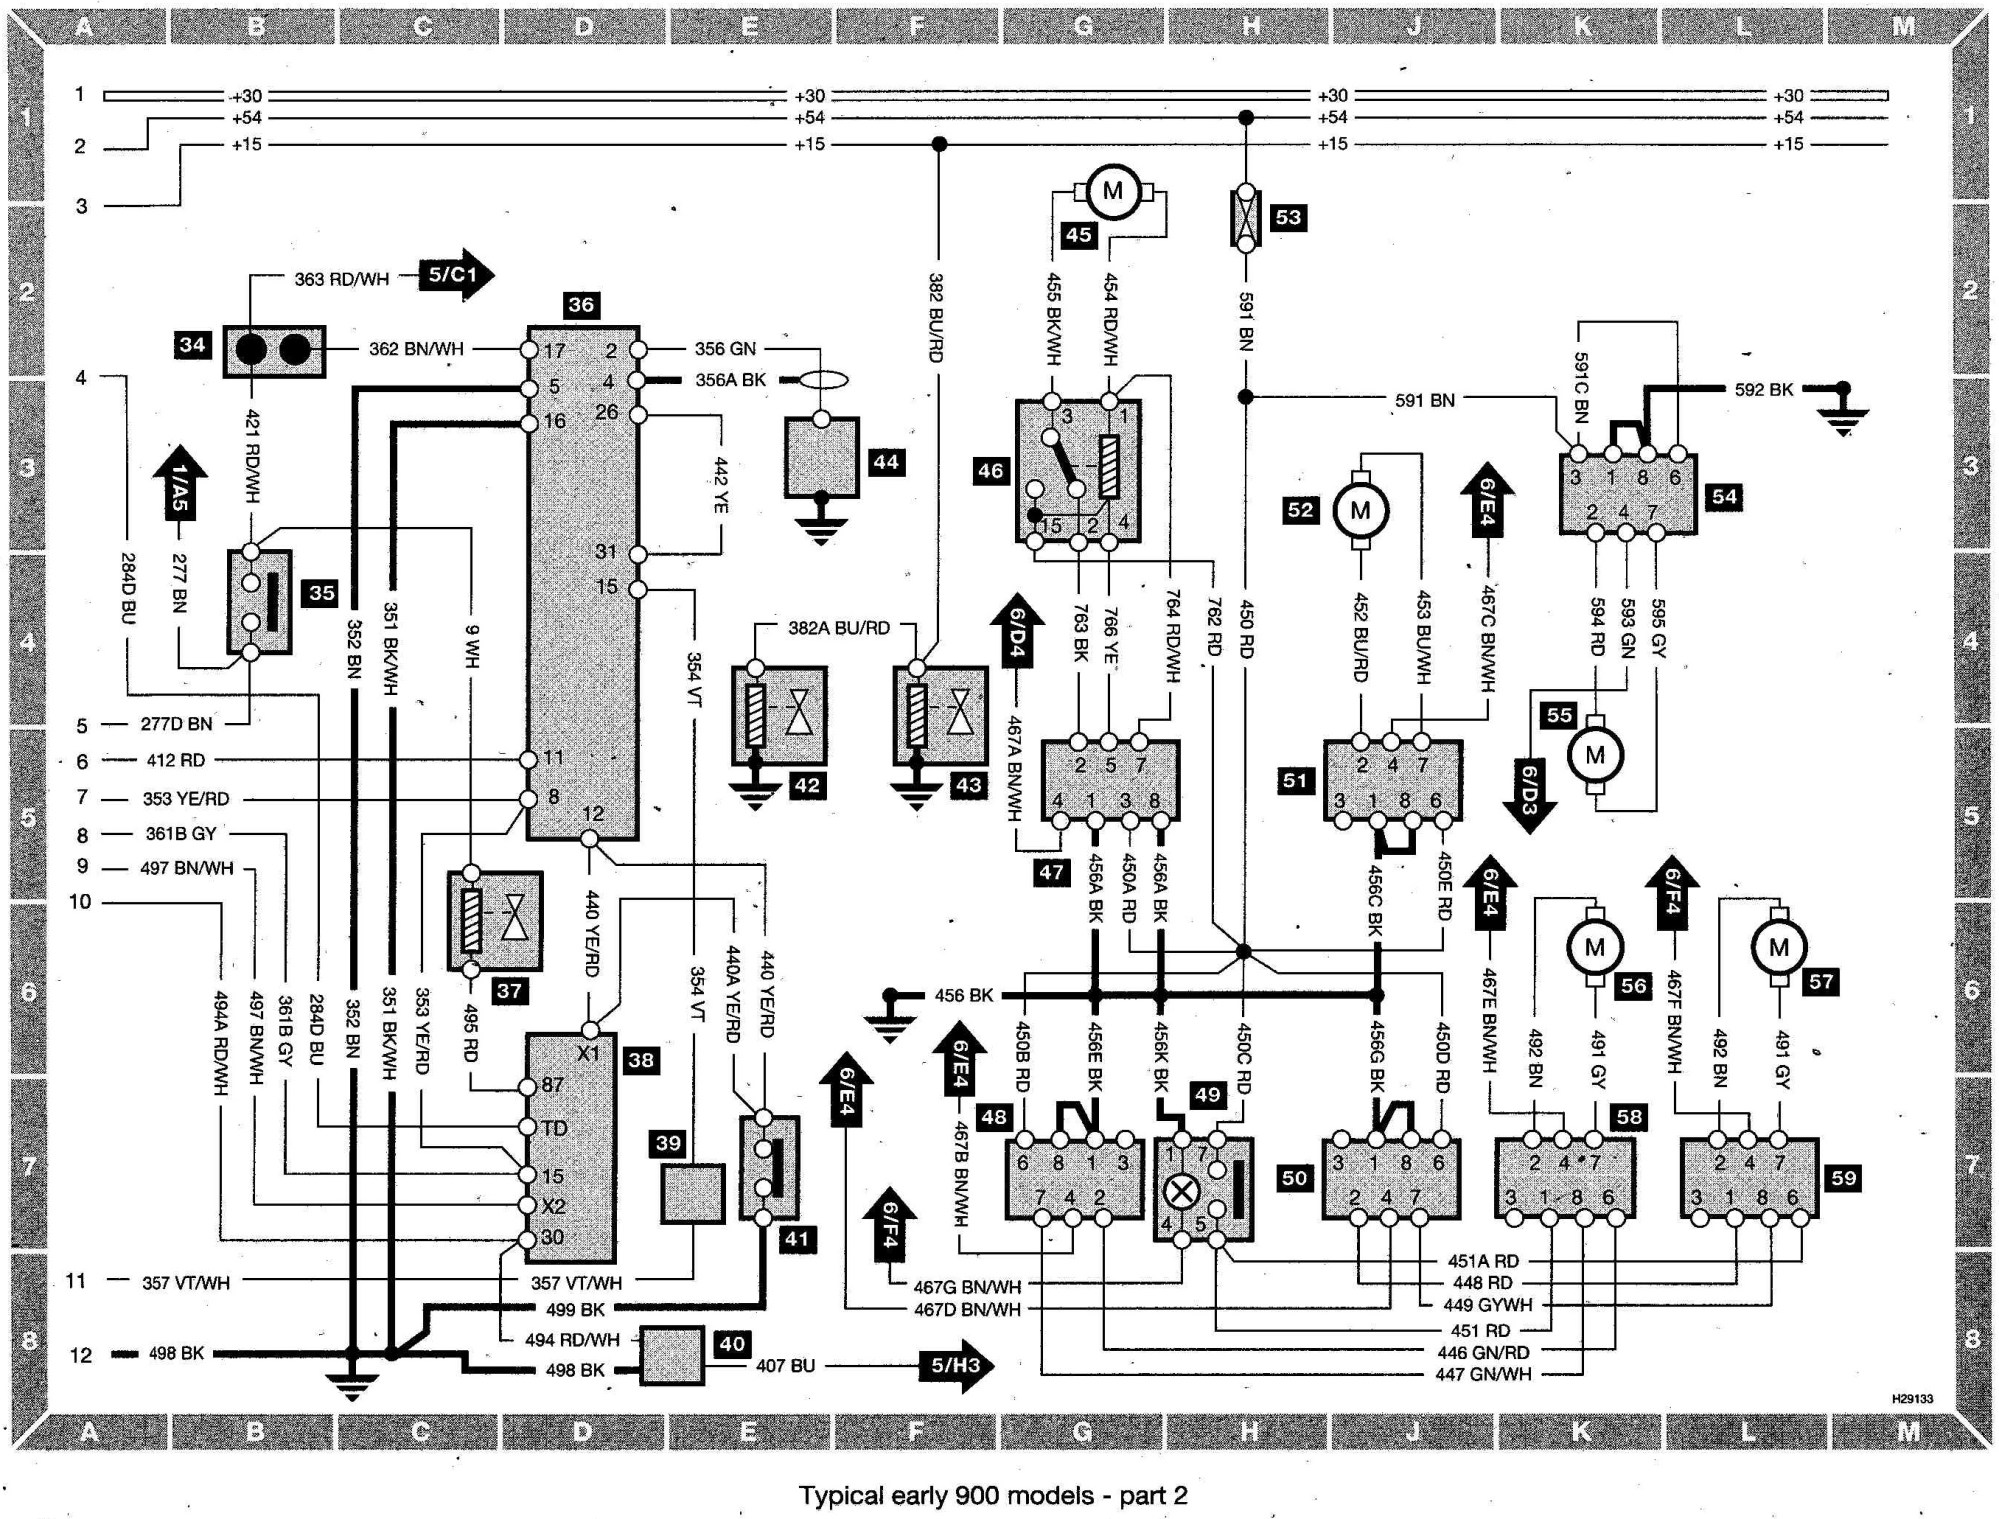 hight resolution of 2005 saab interior lighting wiring electrical wiring diagram 2005 saab interior lighting wiring